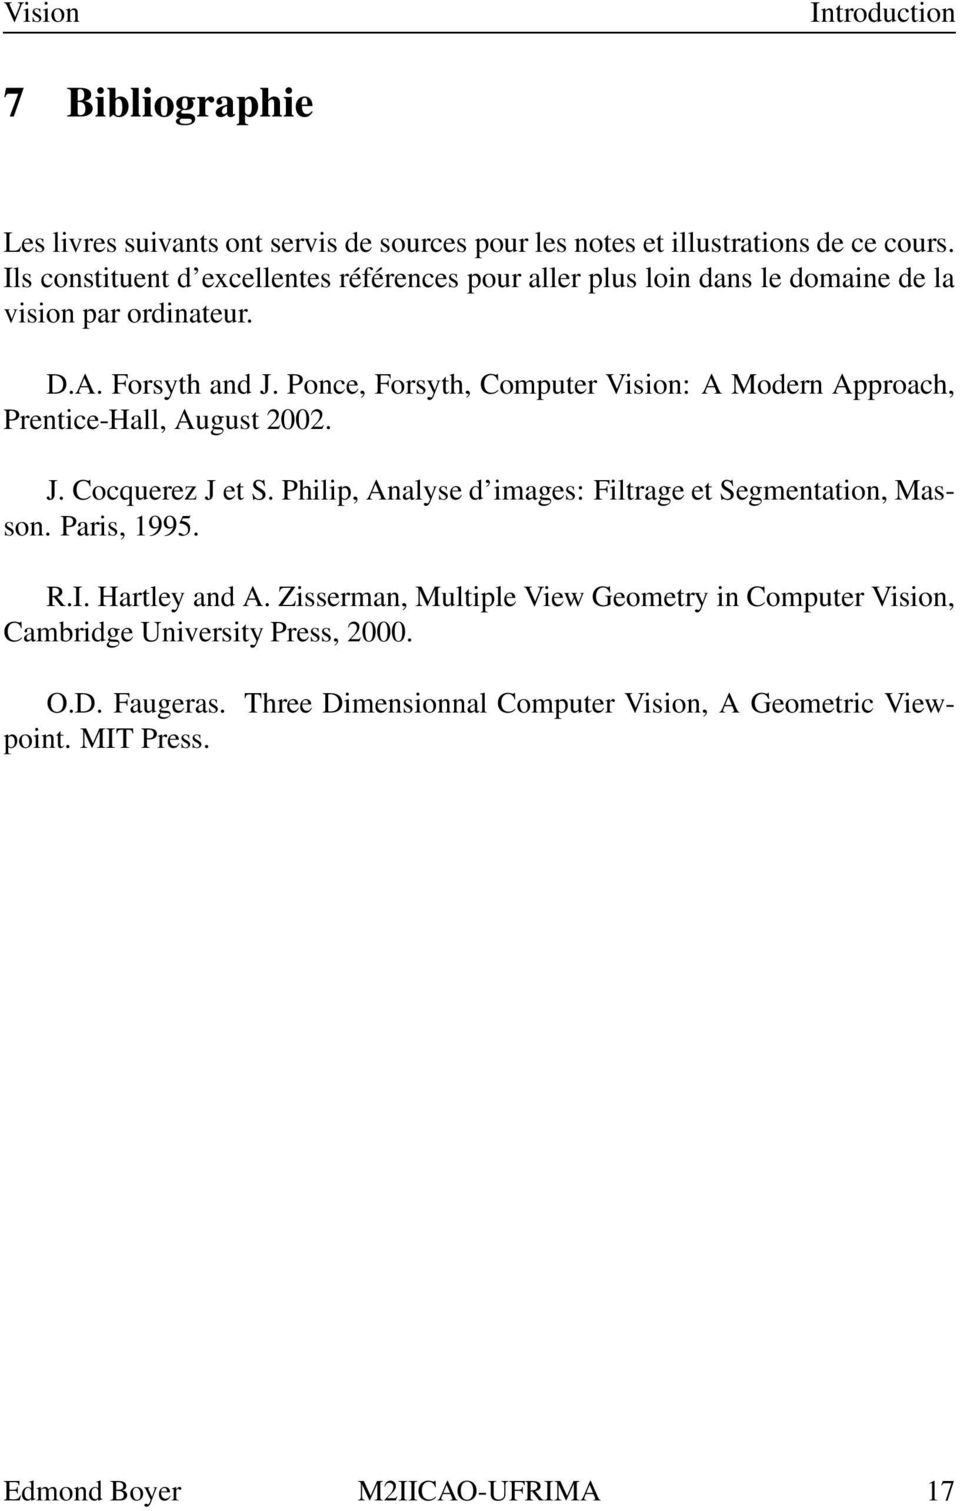 Ponce, Forsyth, Computer Vision: A Modern Approach, Prentice-Hall, August 2002. J. Cocquerez J et S.